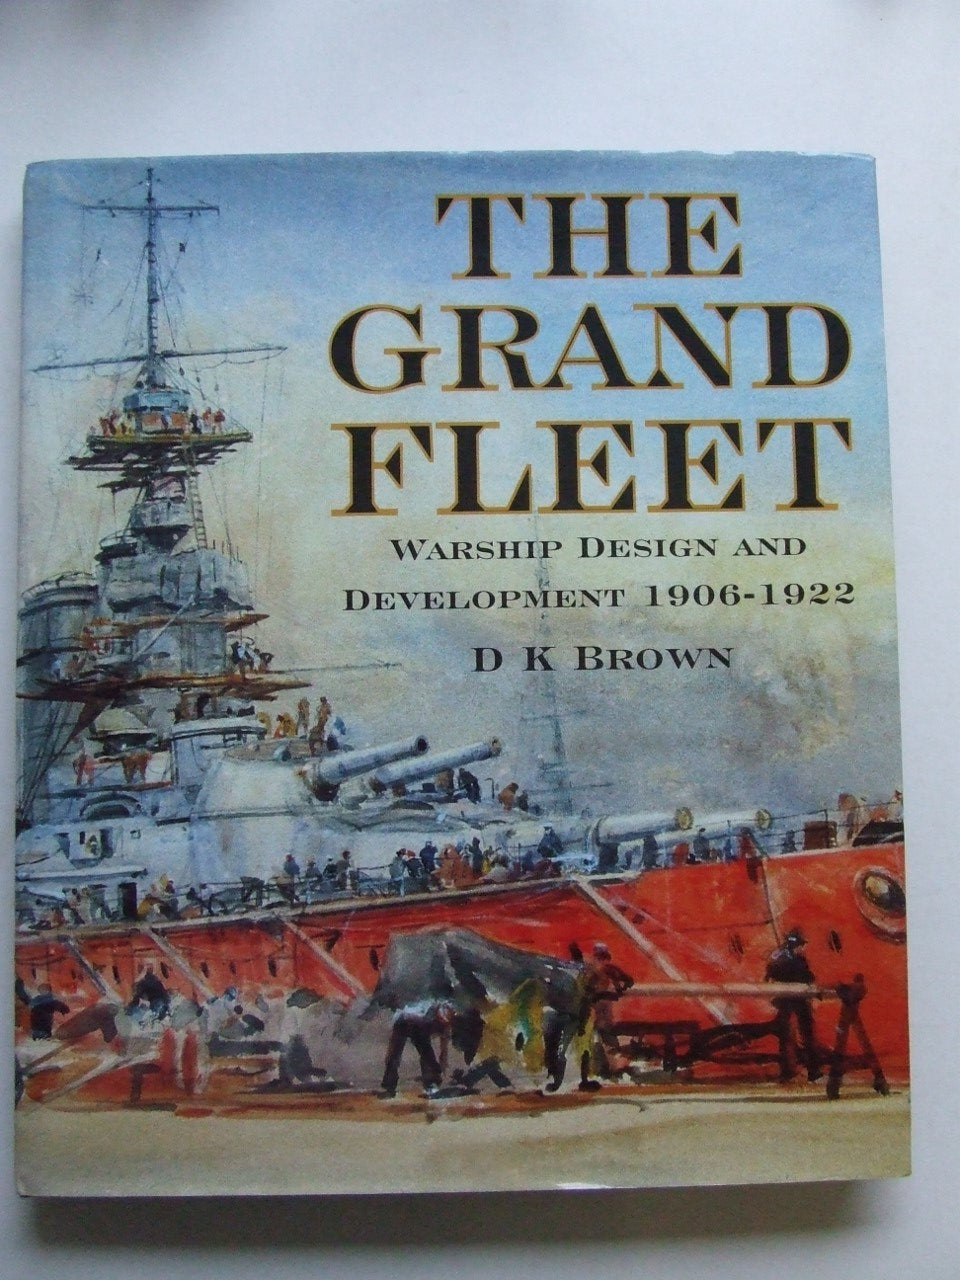 Grand Fleet,  warship design and development 1906-1922